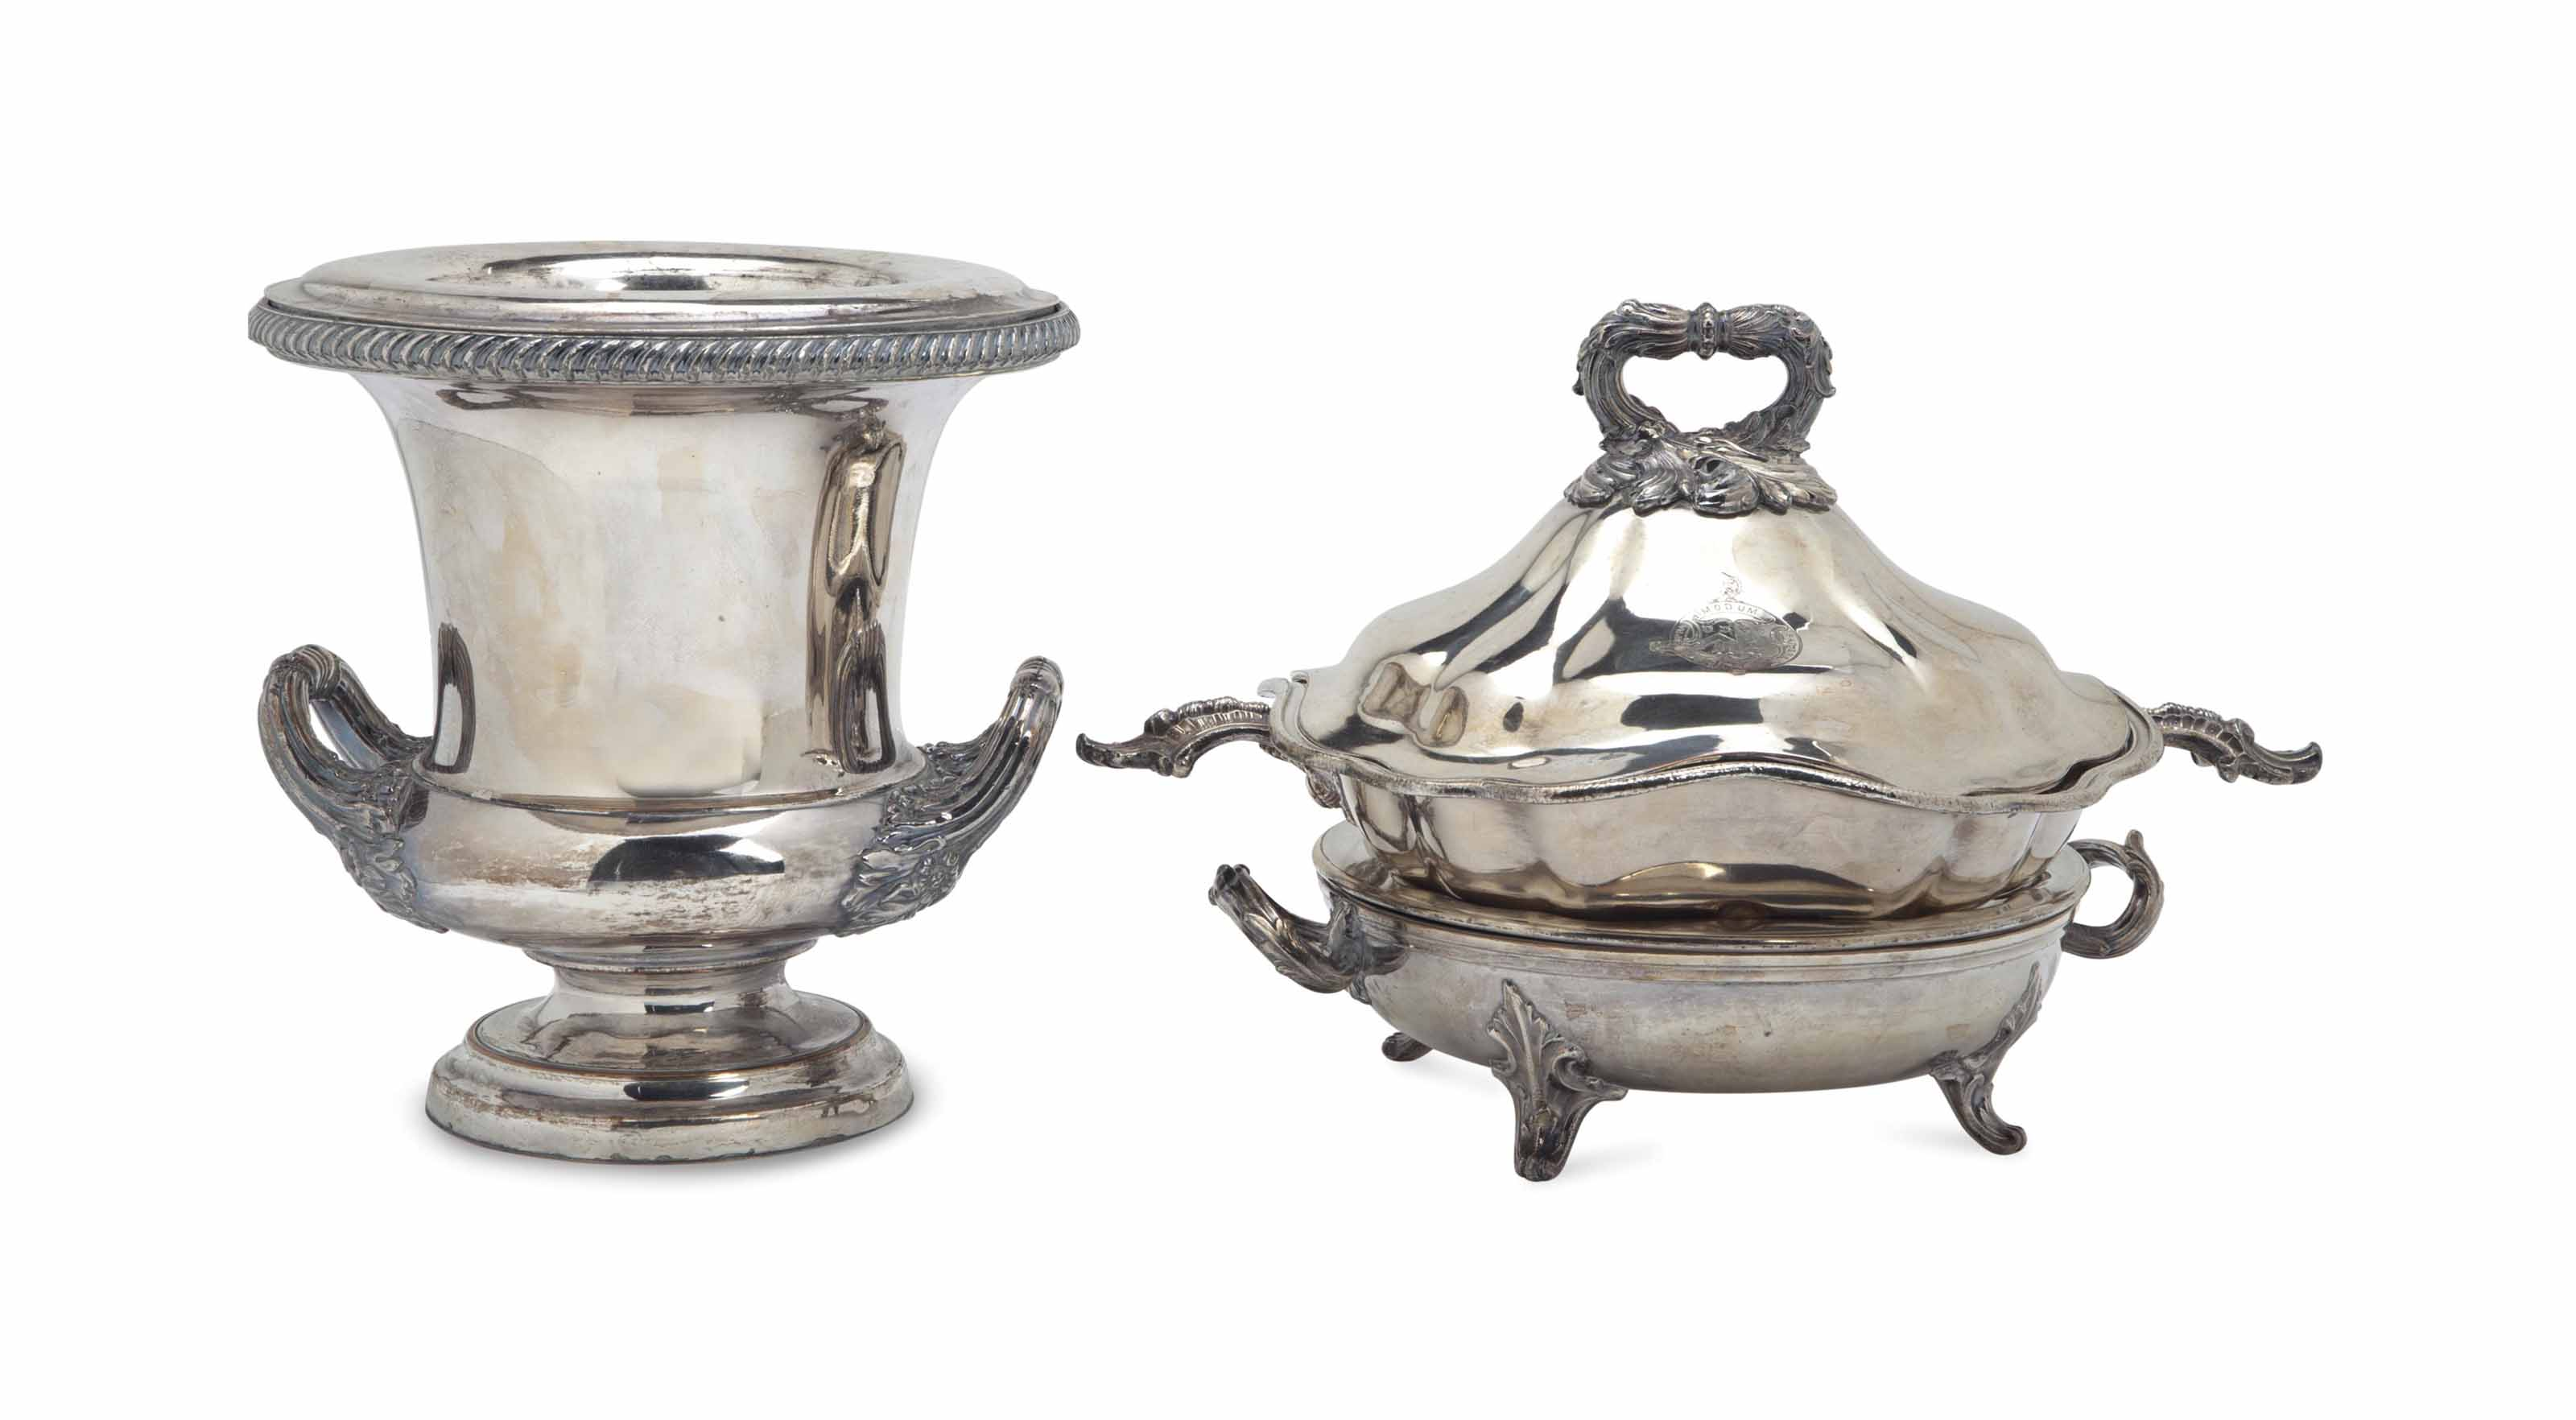 A PAIR OF SHEFFIELD-PLATE WARM